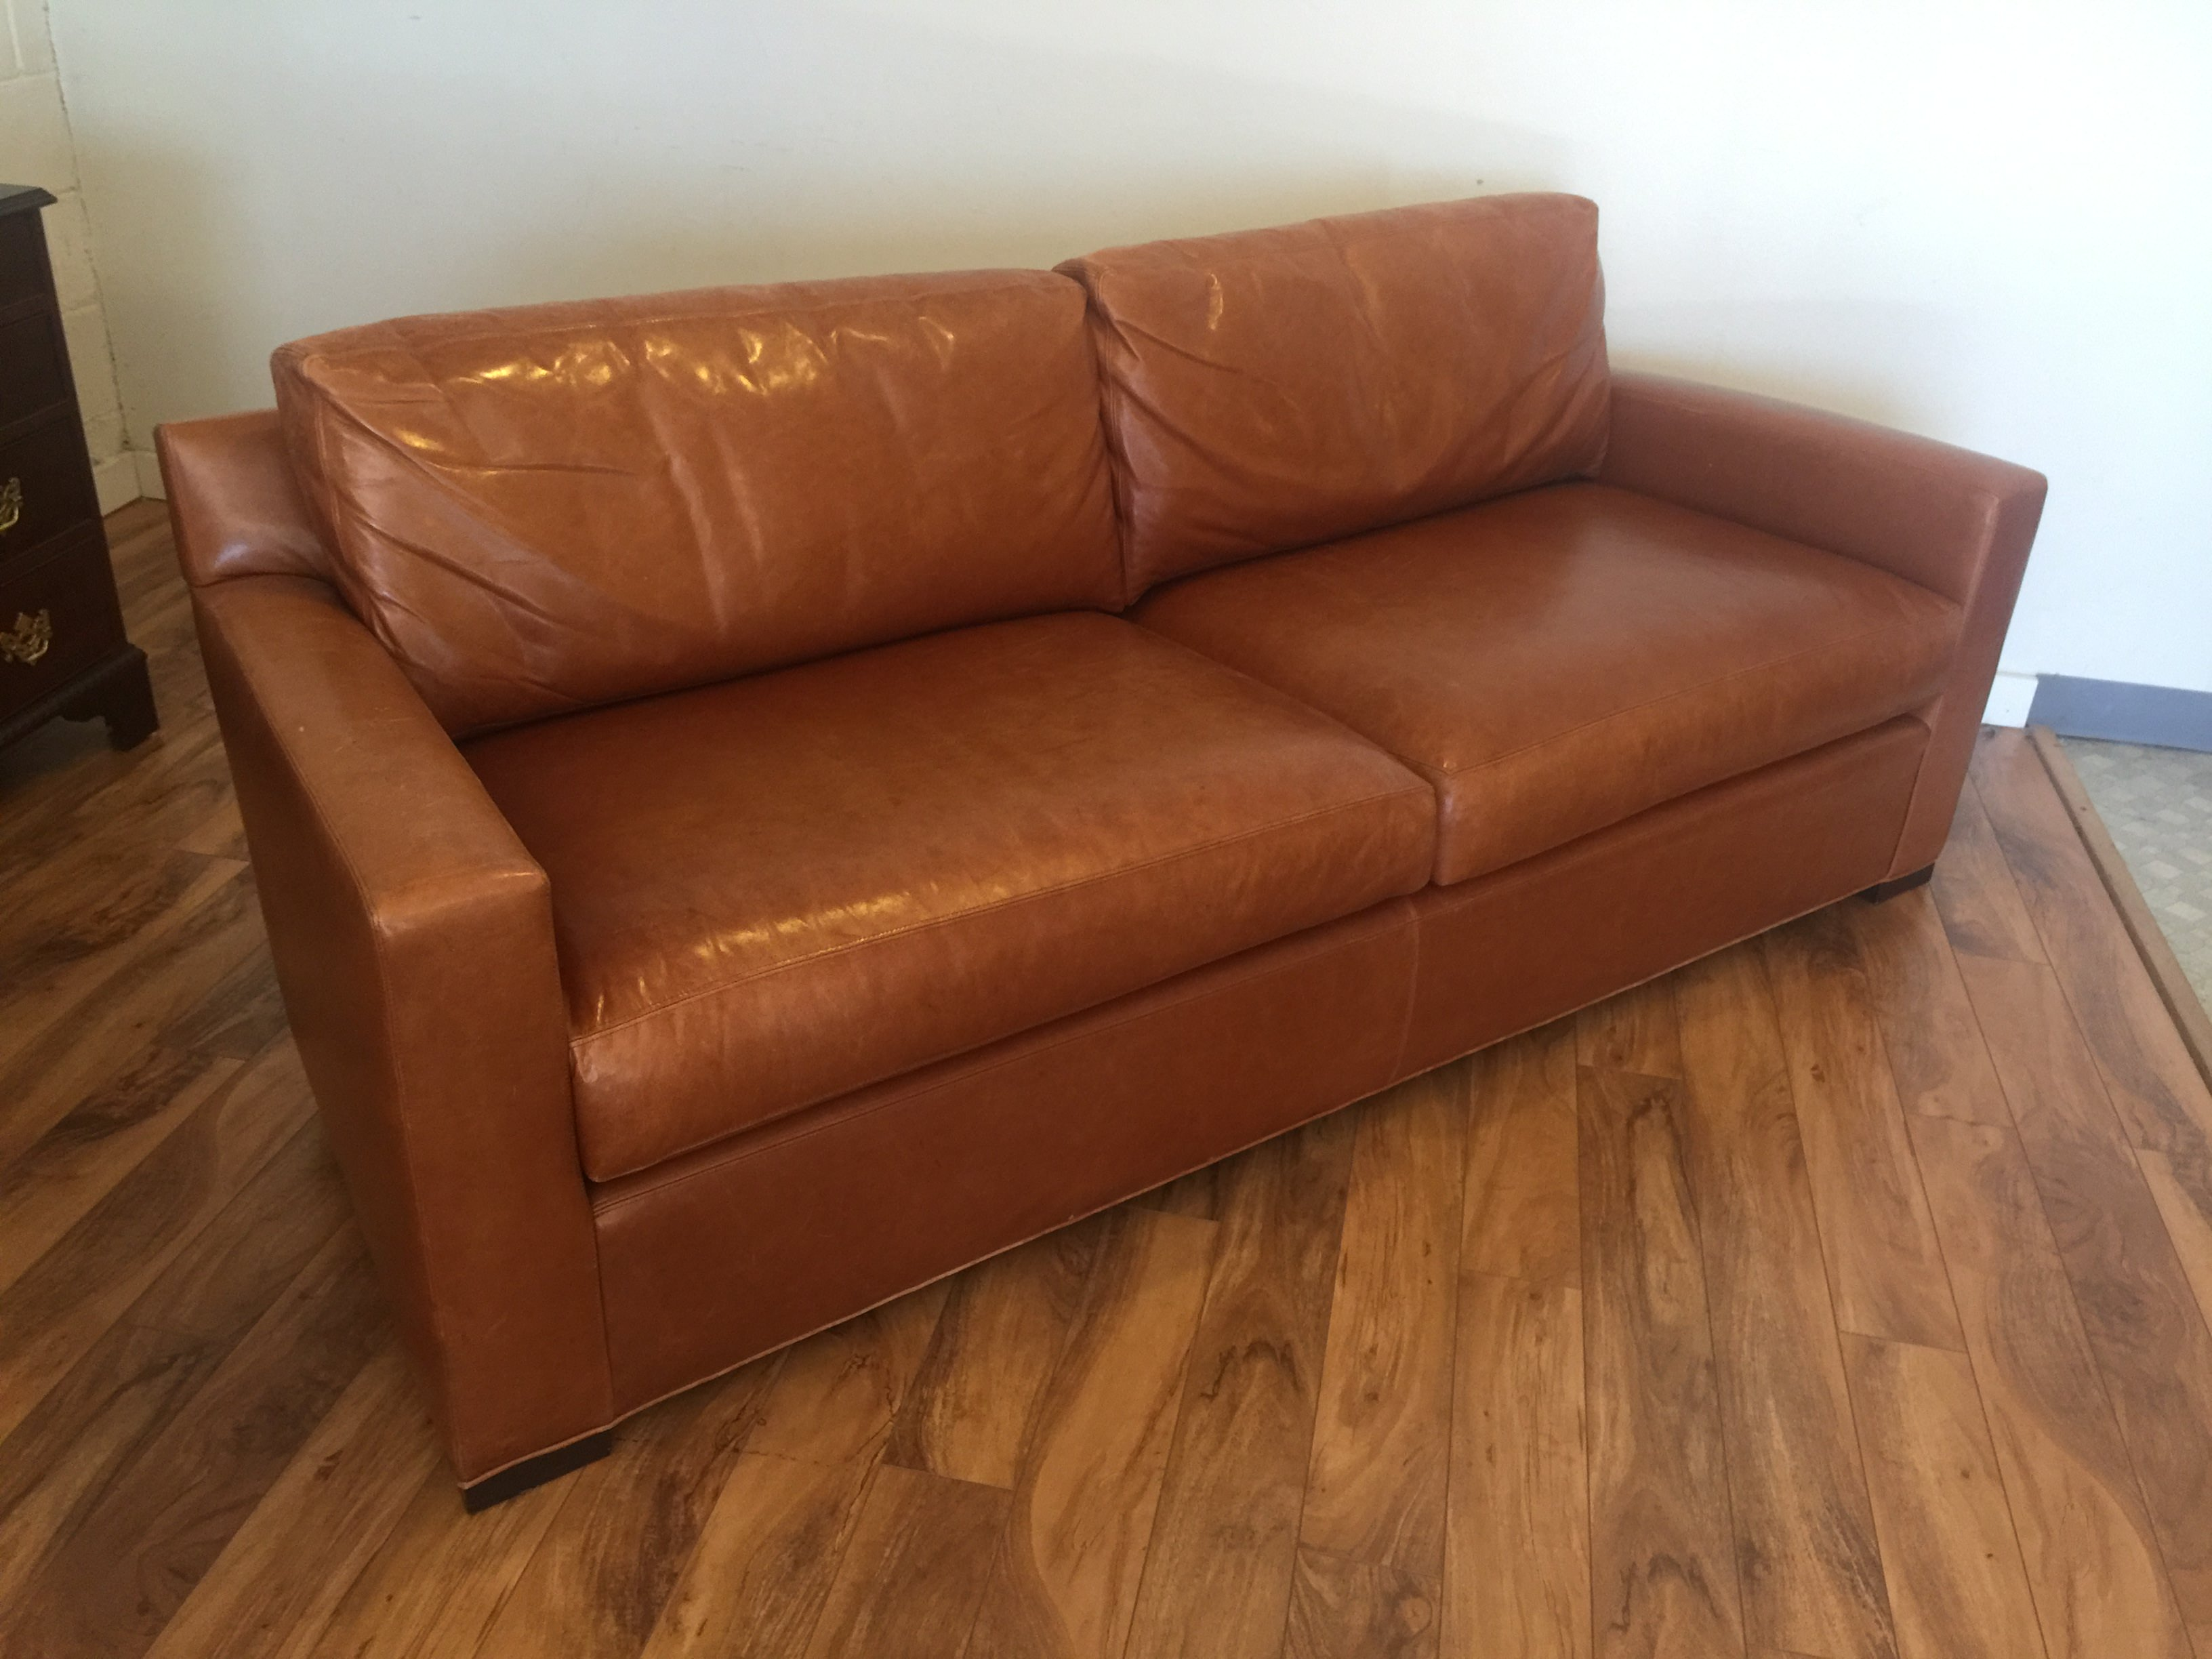 SOLD  Baker Furniture  Coach Leather Sofa  Modern to